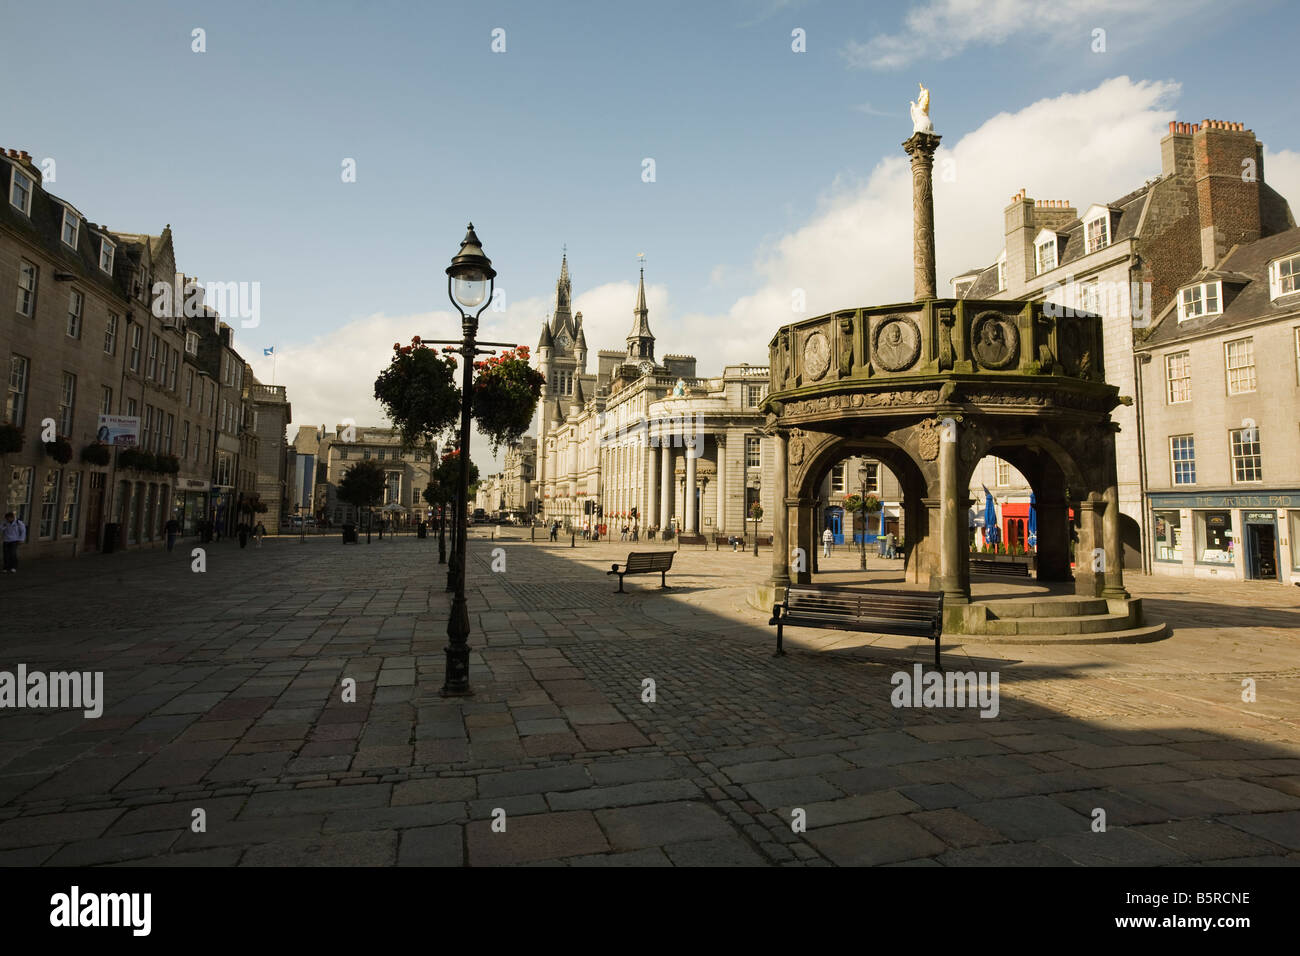 A square in the central part of Aberdeen next to Union Street - Stock Image